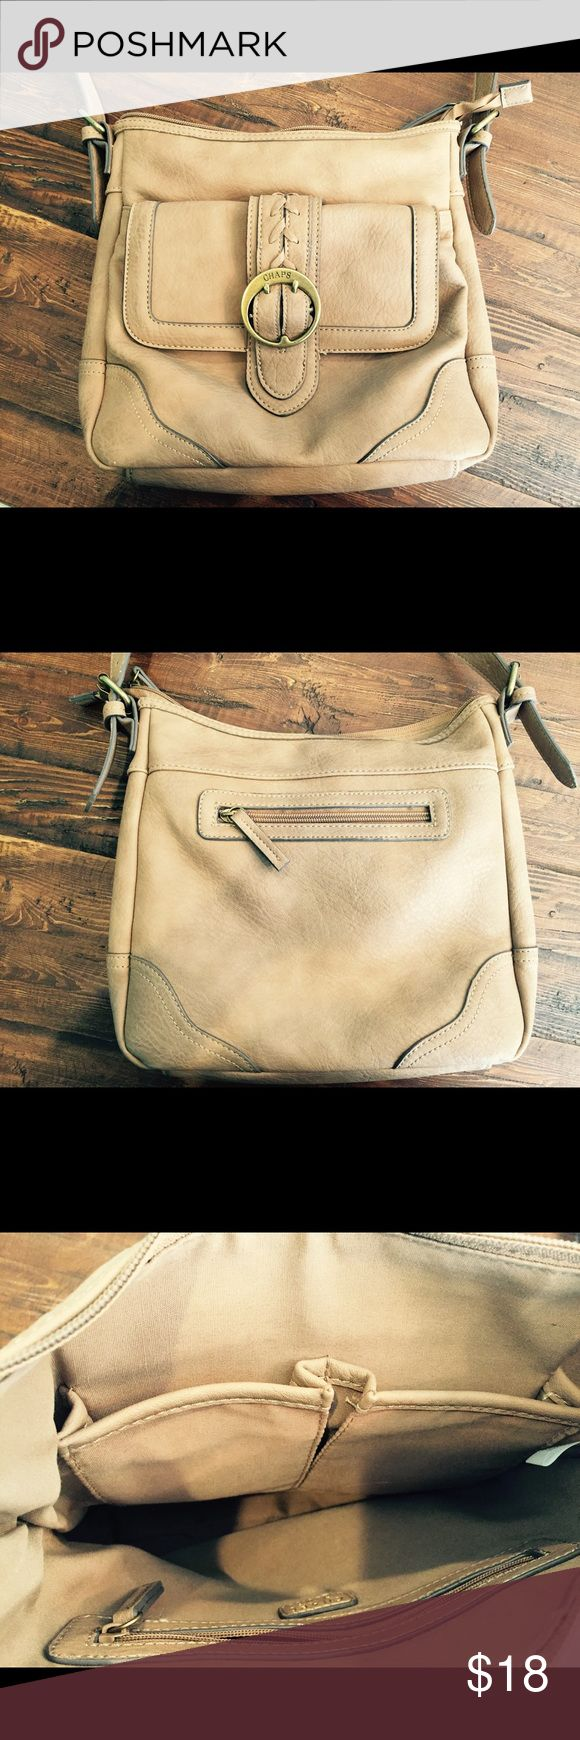 """Chaps Crossbody Bag This bag holds a lot!  Beige Chaps Western bag.  Large interior with two open pockets and one zippered pocket.  Outside pocket under flap and additional zippered pocket on back of bag.  Adjustable strap - 54"""" in total length.  Non-smoking home. Chaps Bags Crossbody Bags"""